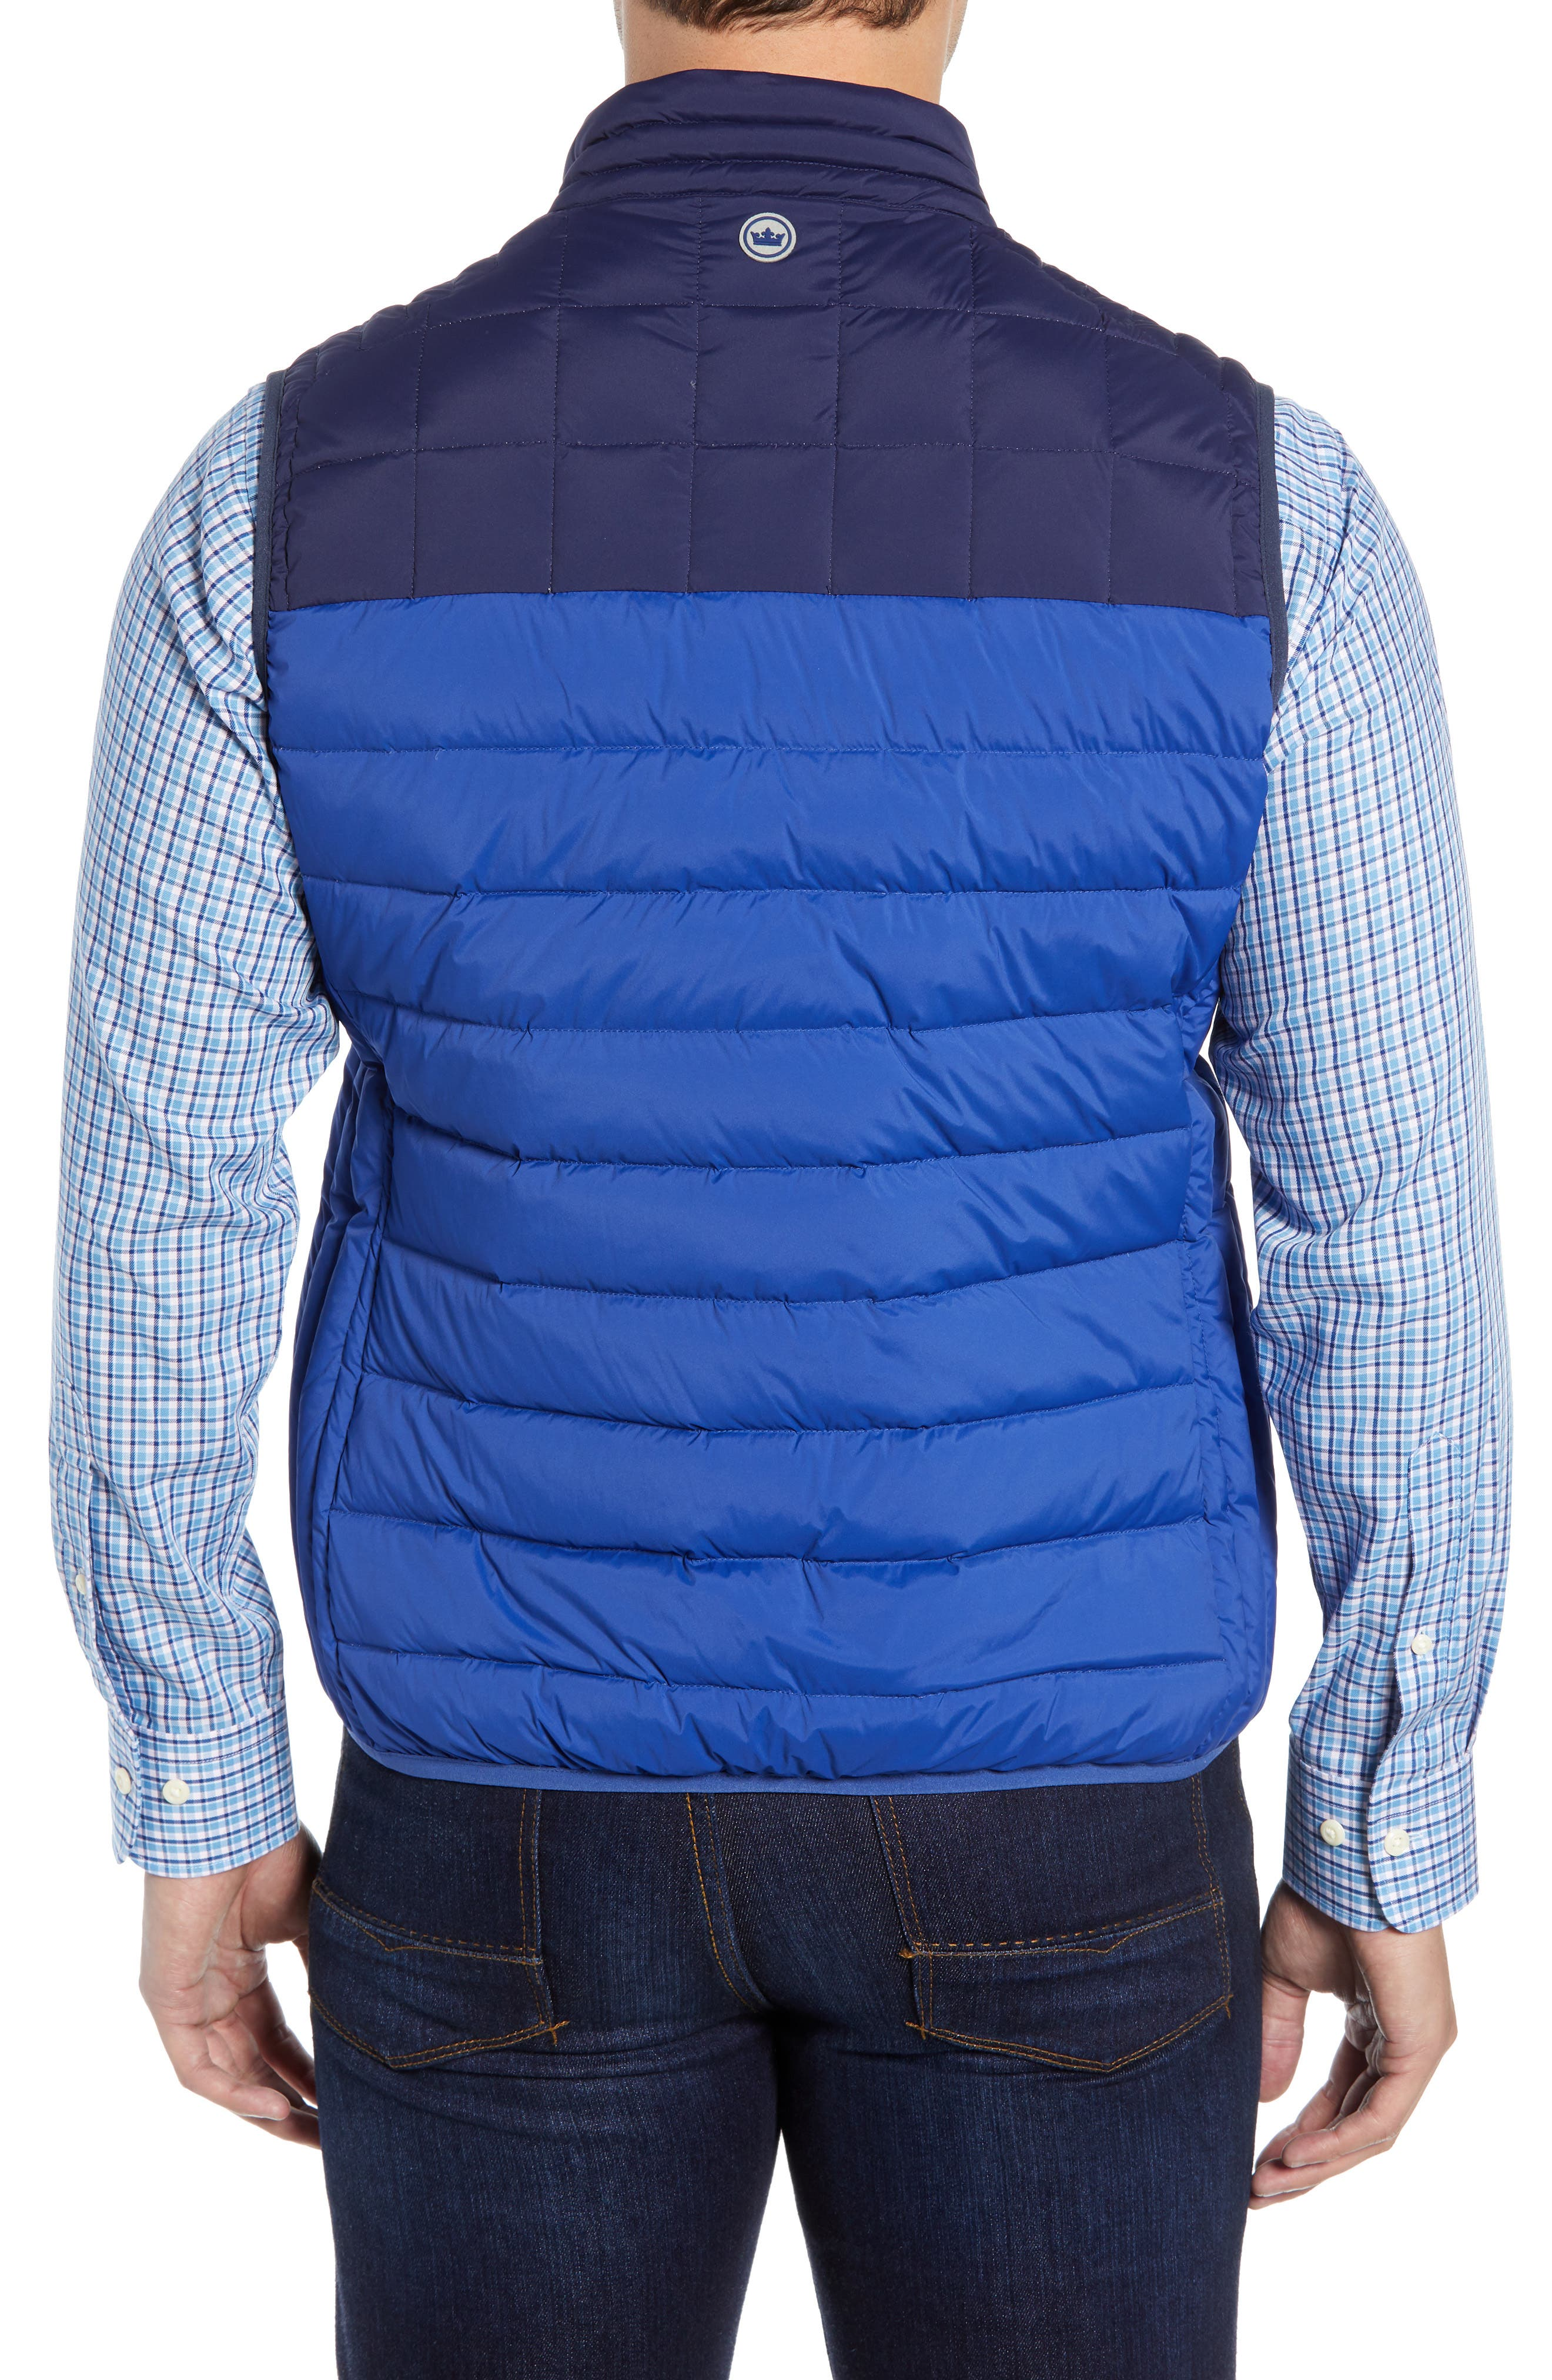 PETER MILLAR, Sail Classic Fit Puffer Vest, Alternate thumbnail 2, color, SAIL